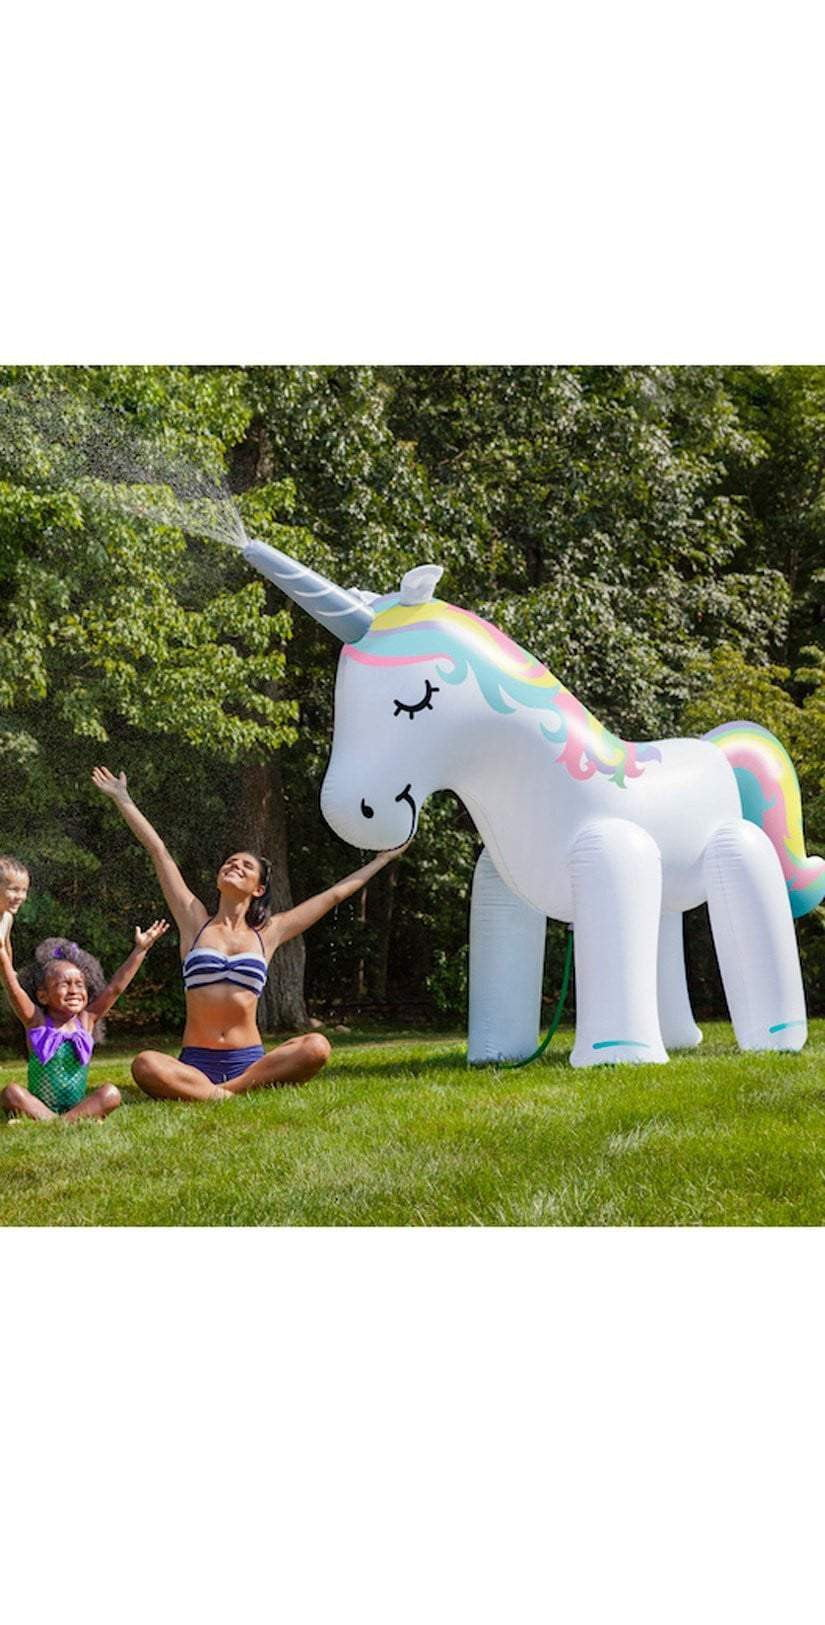 Big Mouth Ginormous Unicorn Yard Sprinkler BMYS-001 - IN STOCK NOW: